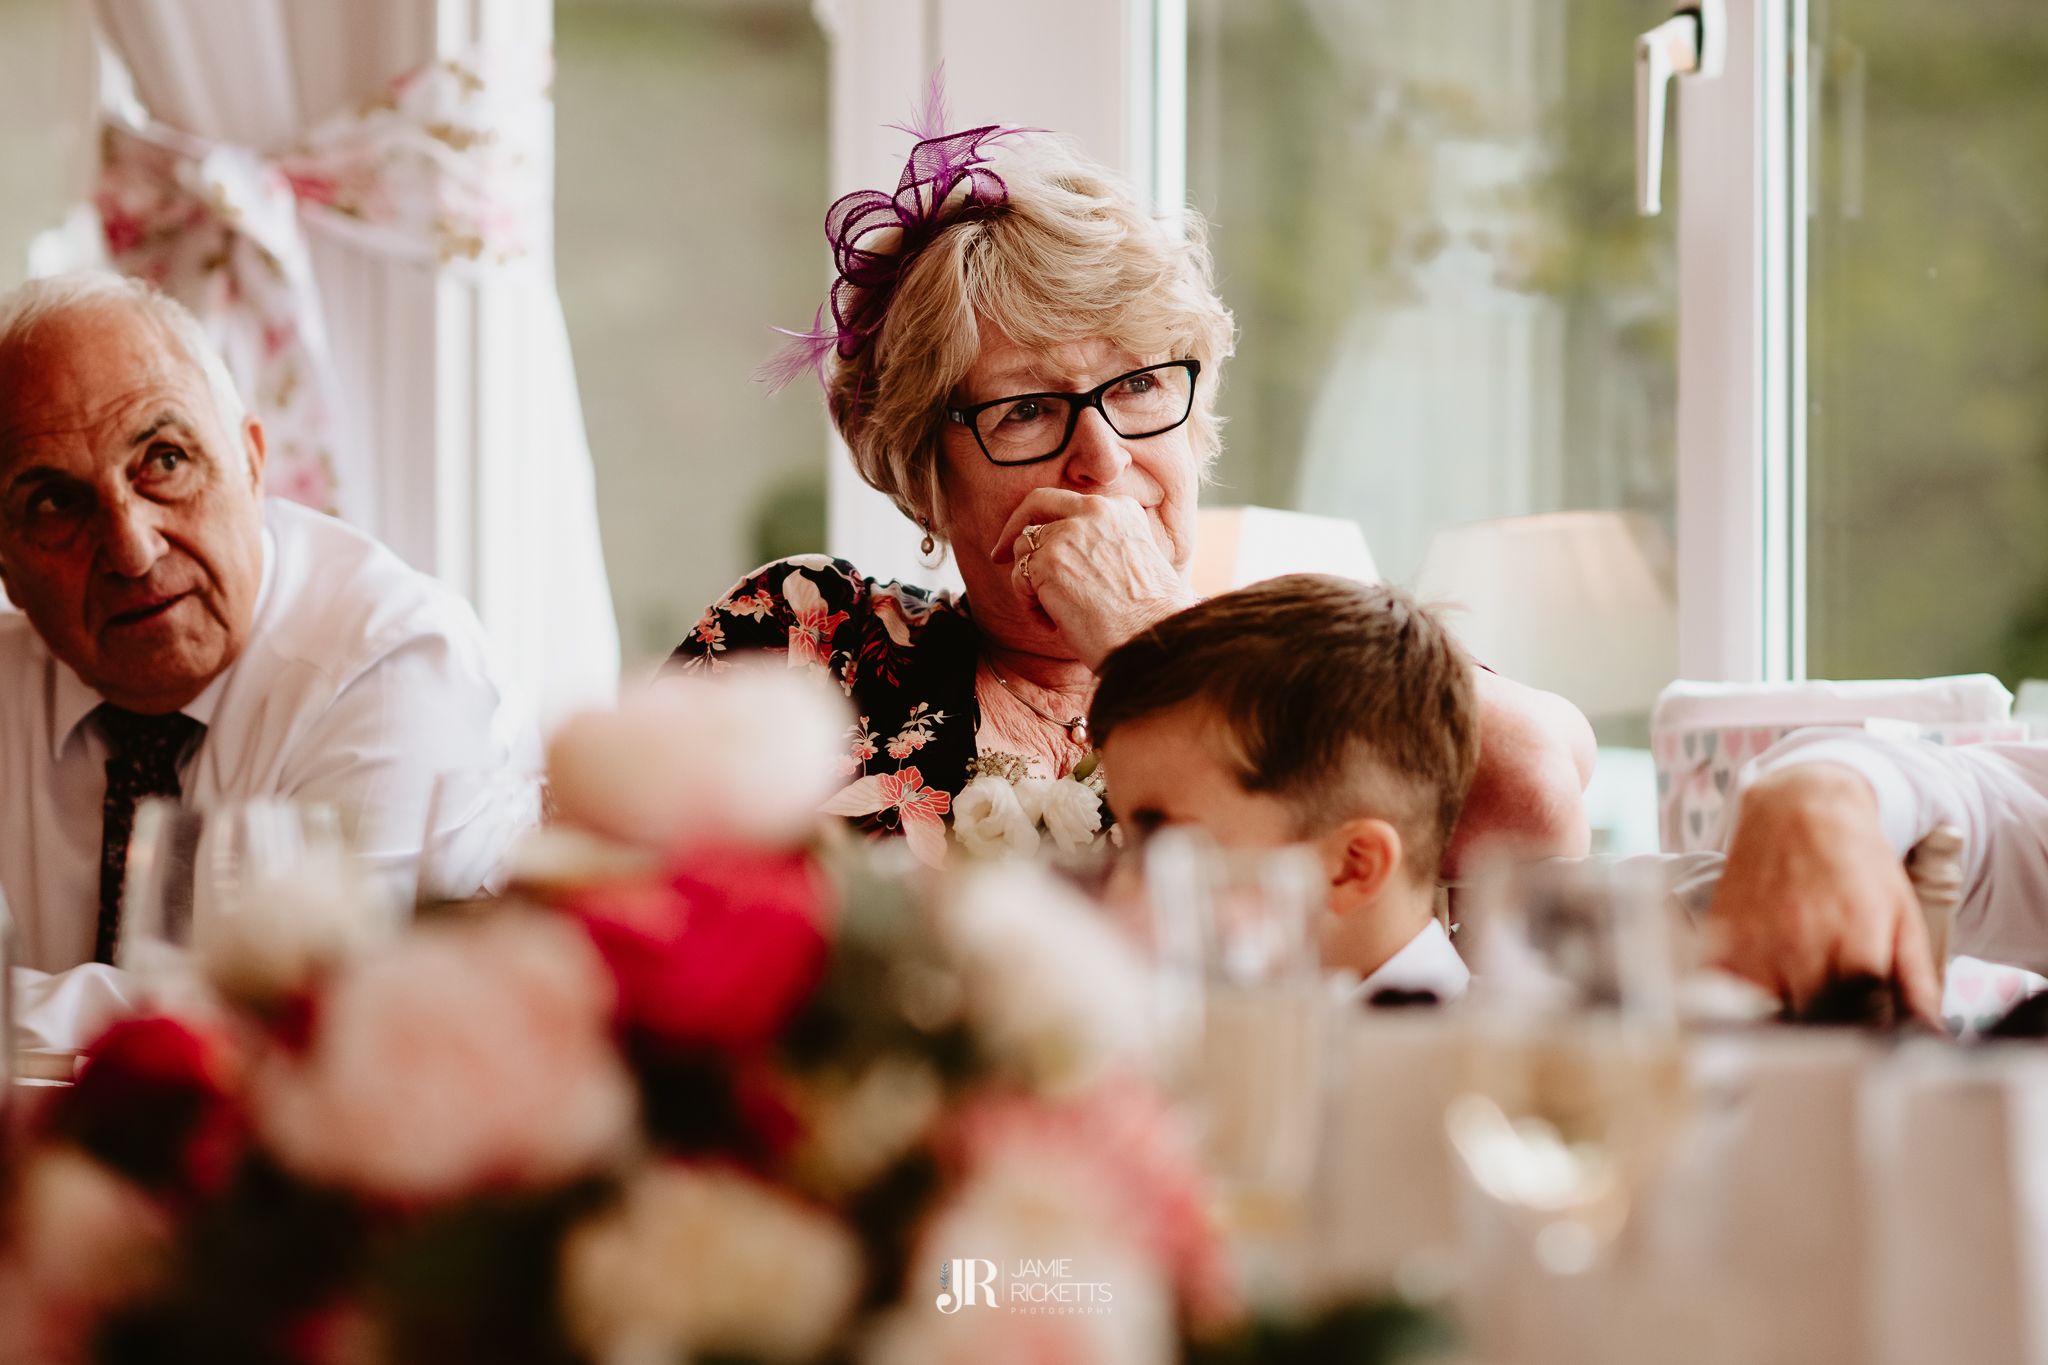 Wroxeter-Hotel-Wedding-Photography-In-Shropshire-By-Shropshire-Wedding-Photographer-Jamie-Ricketts-157.JPG